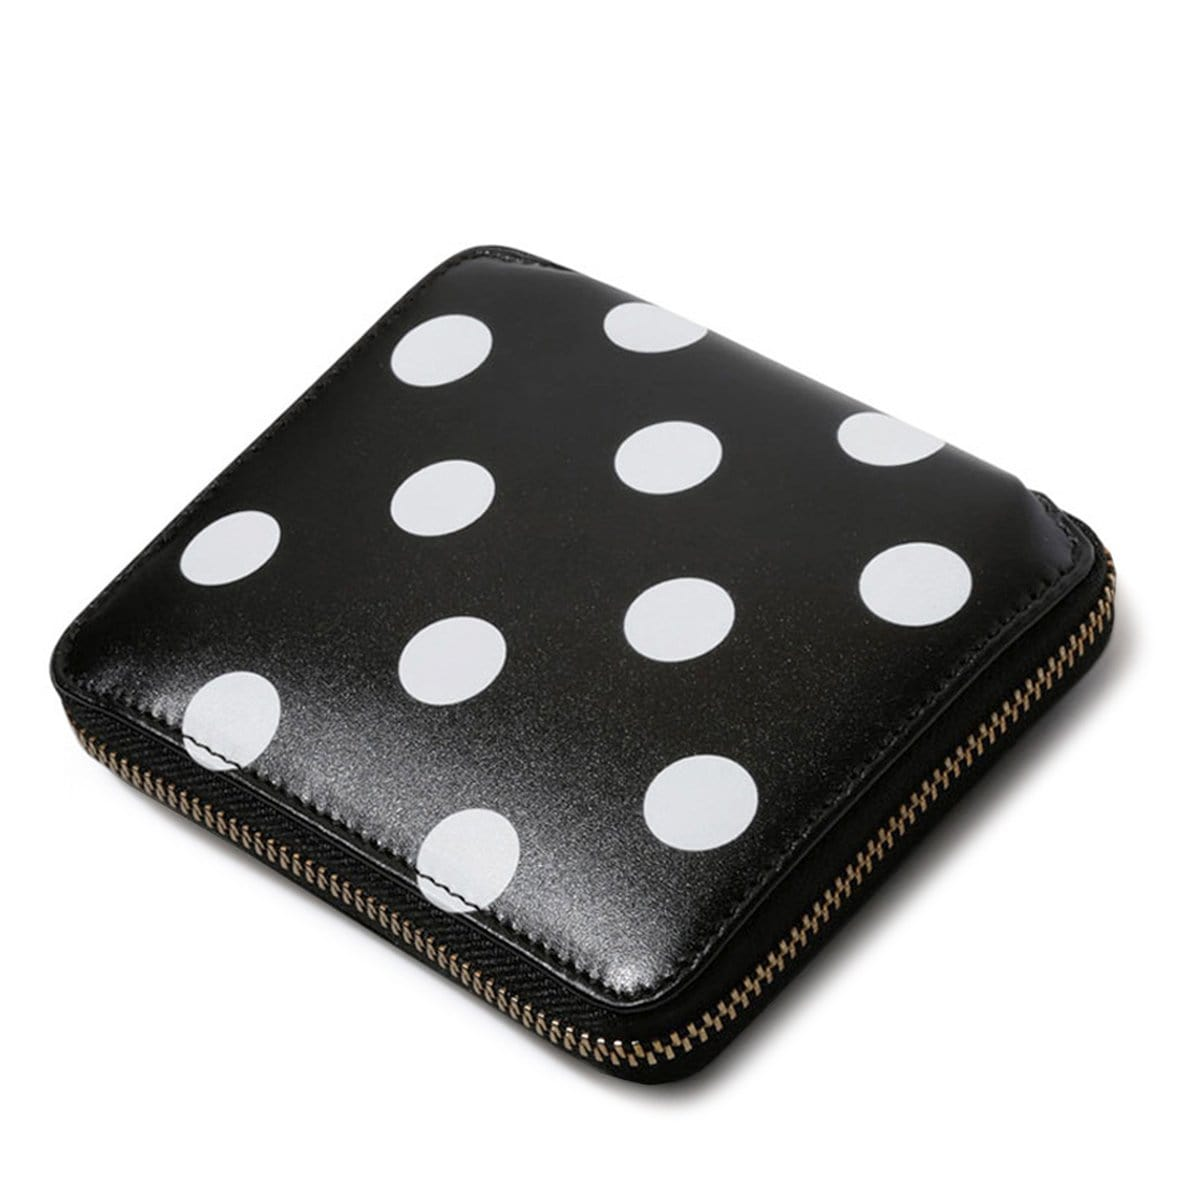 Comme Des Garçons Wallet Bags & Accessories BLACK / O/S DOTS PRINTED LEATHER LINE